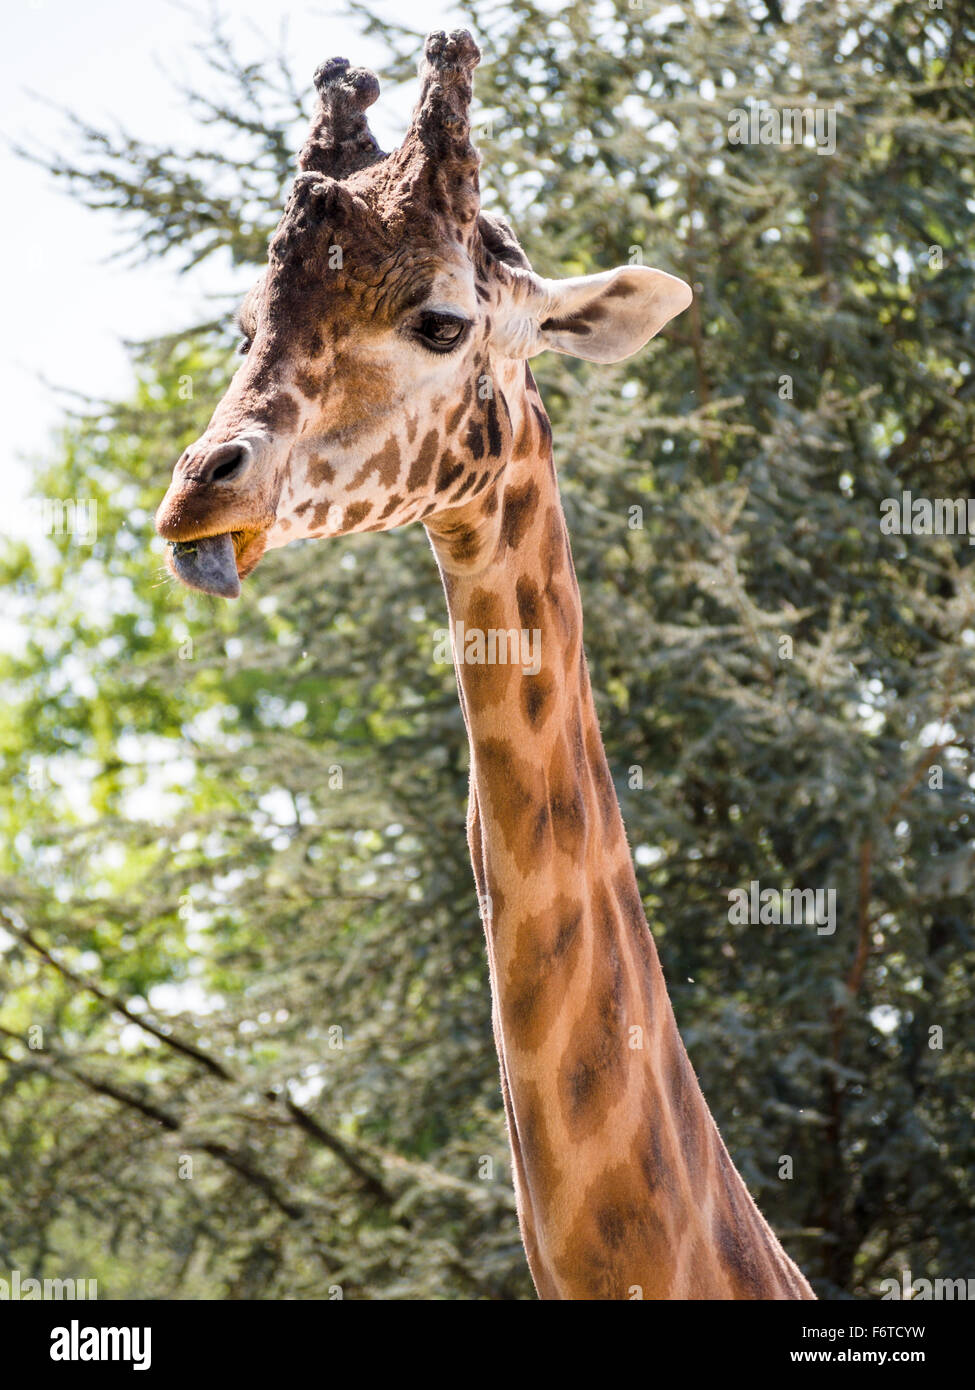 Giraffe eating and licking its lips. A Giraffe with trees behind chews on some food with a saliva covered tongue - Stock Image